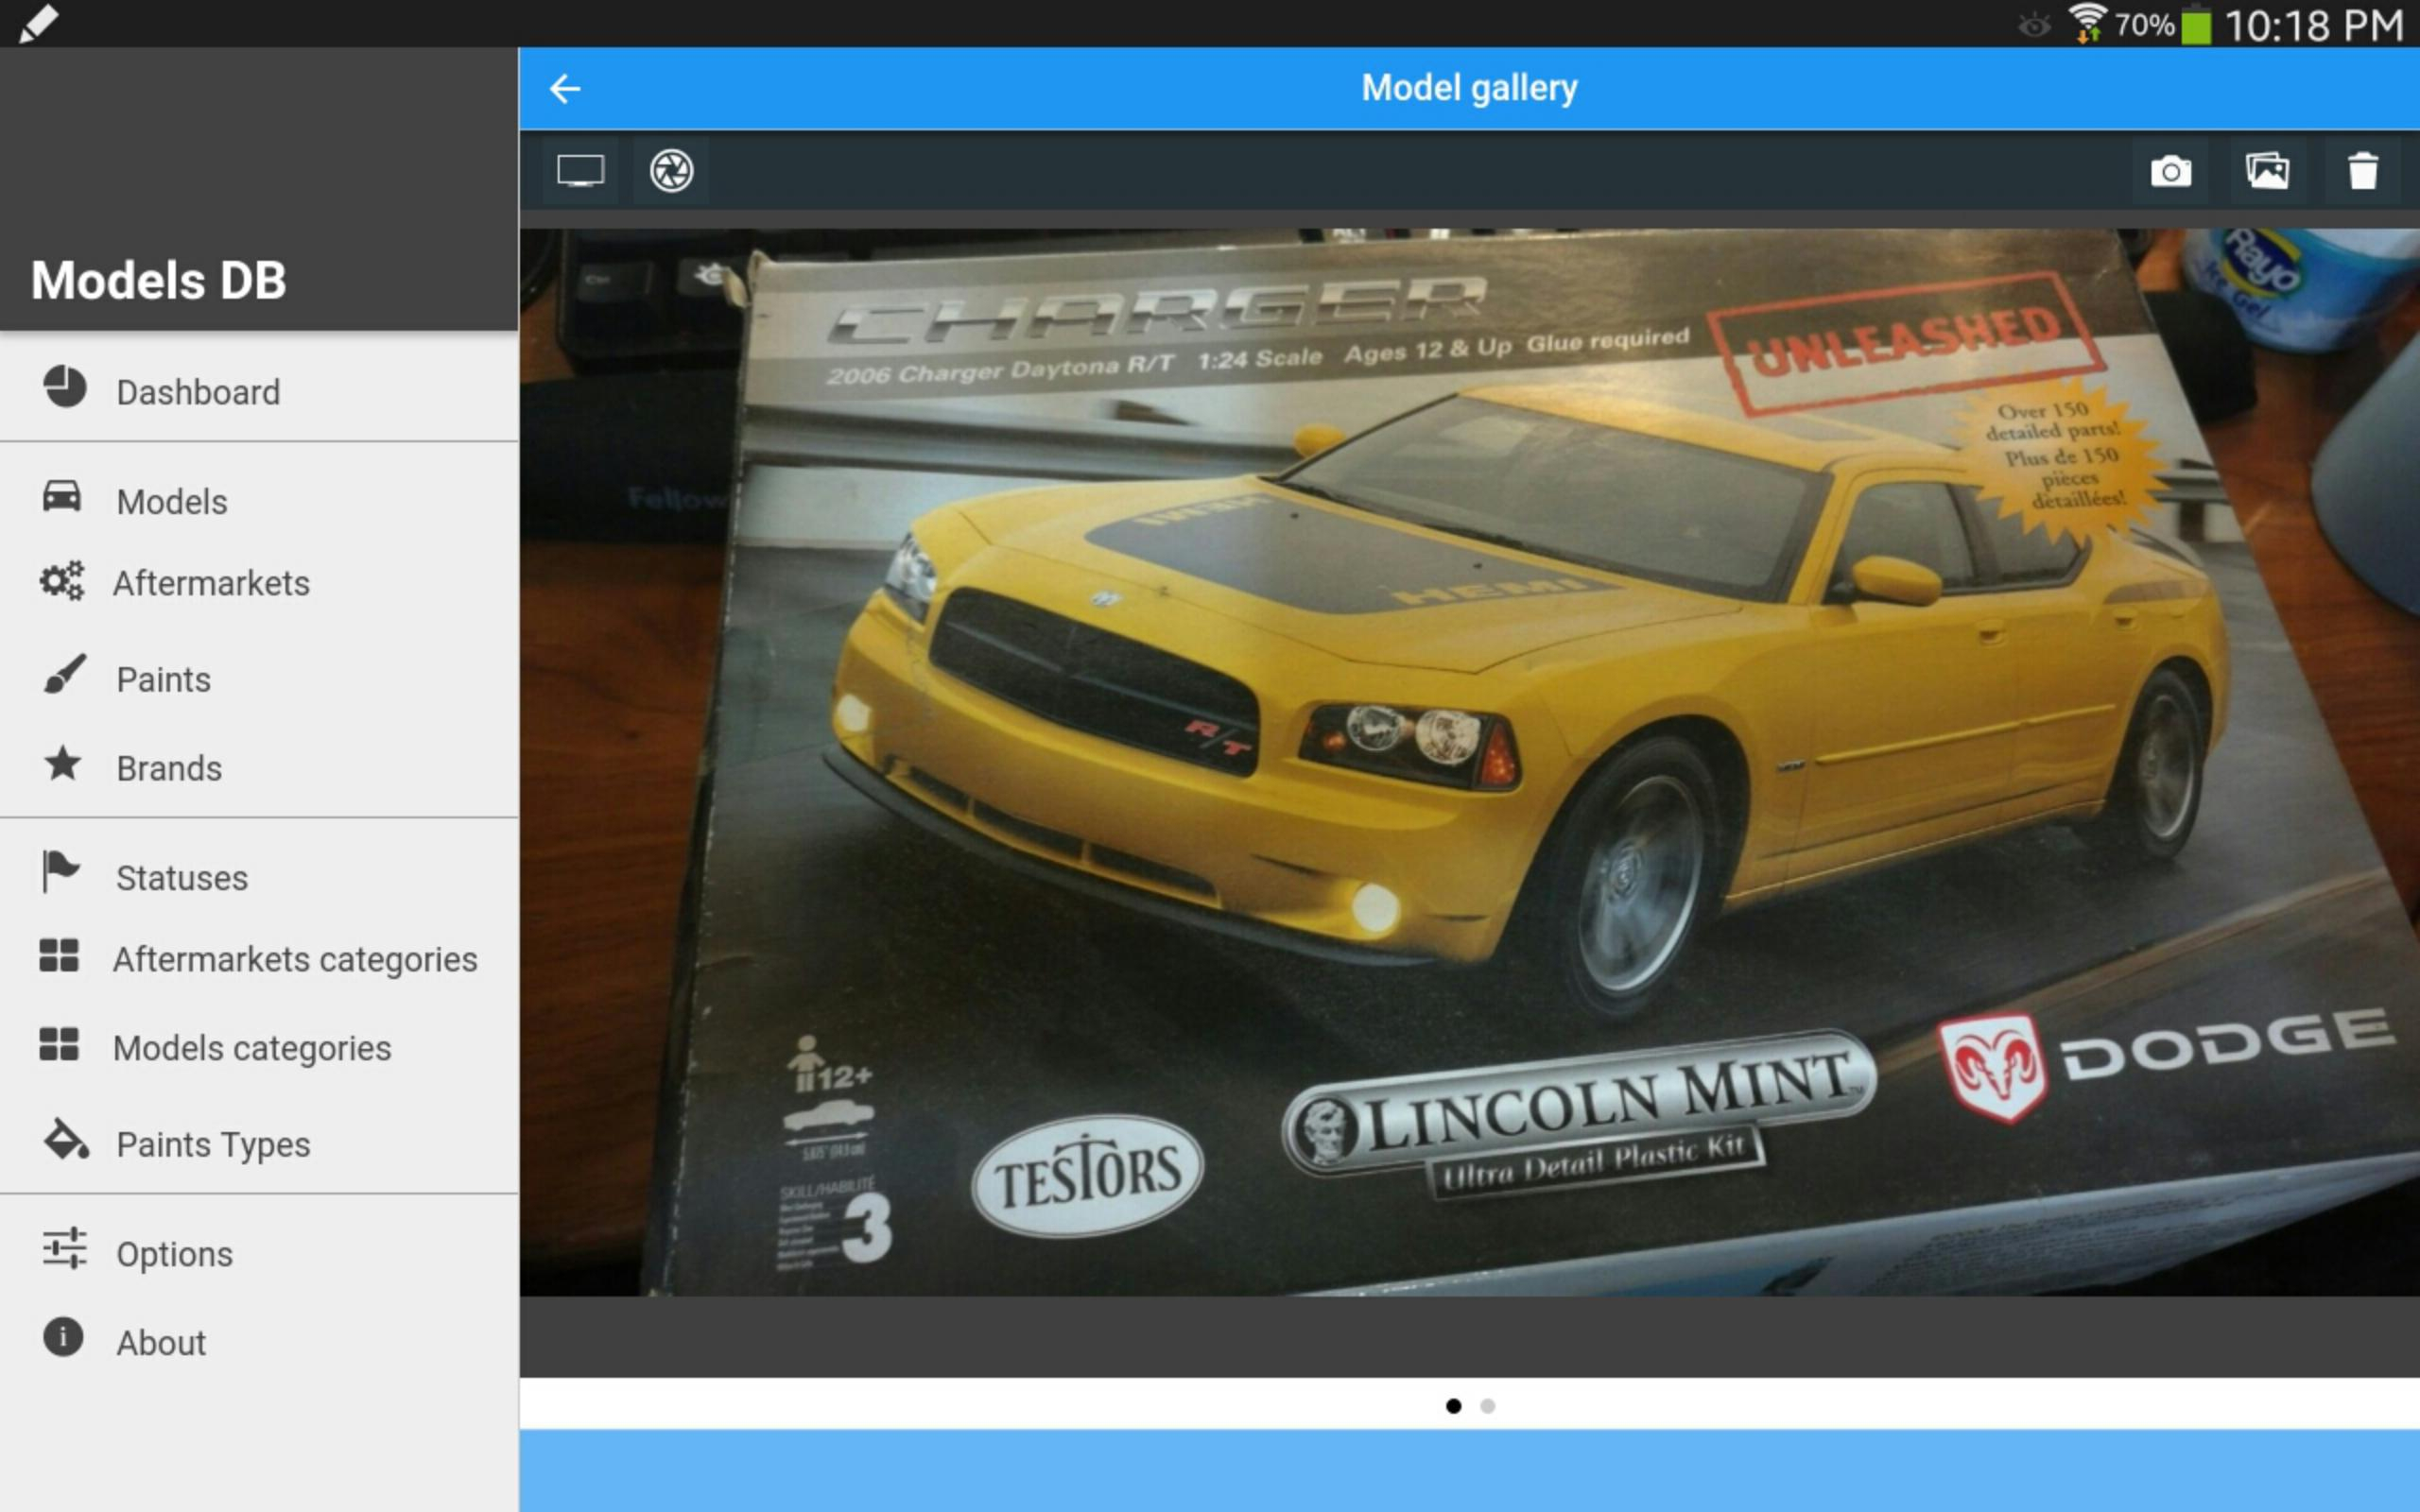 Scale Models Db Demo For Android - Apk Download within Db Models